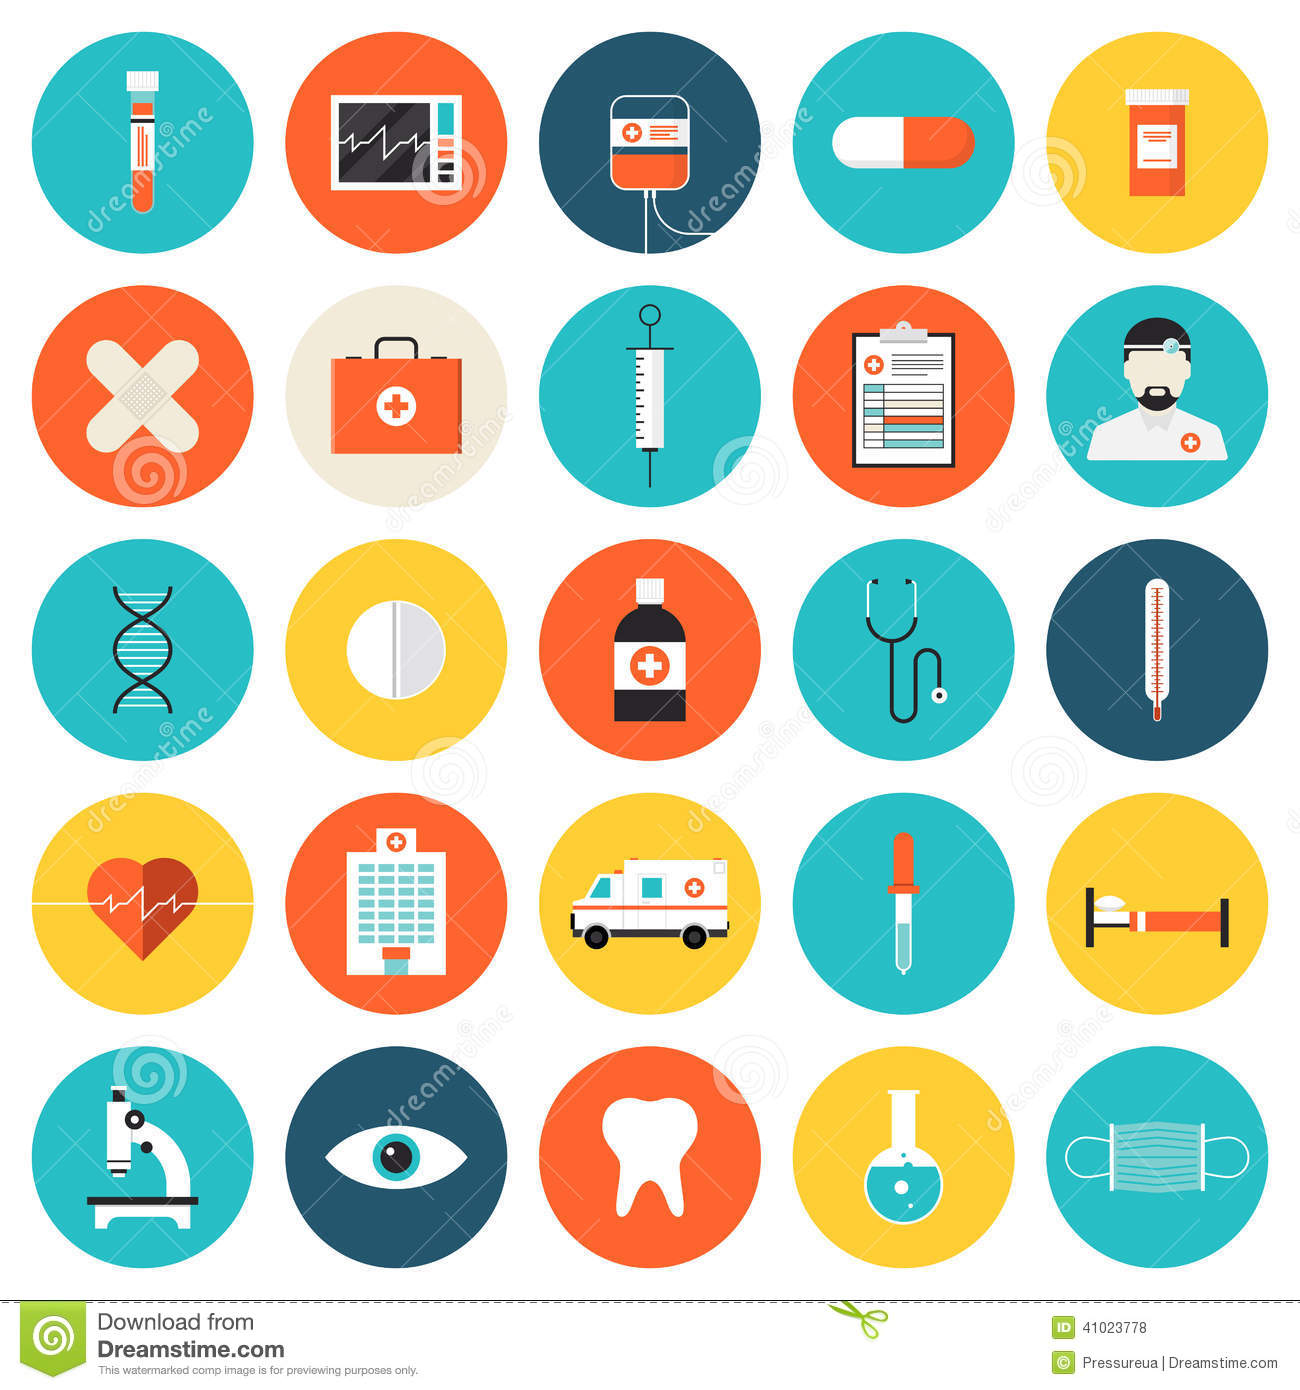 Healthcare clipart images free png transparent download Health Care Clipart Pictures | Clipart Panda - Free Clipart ... png transparent download